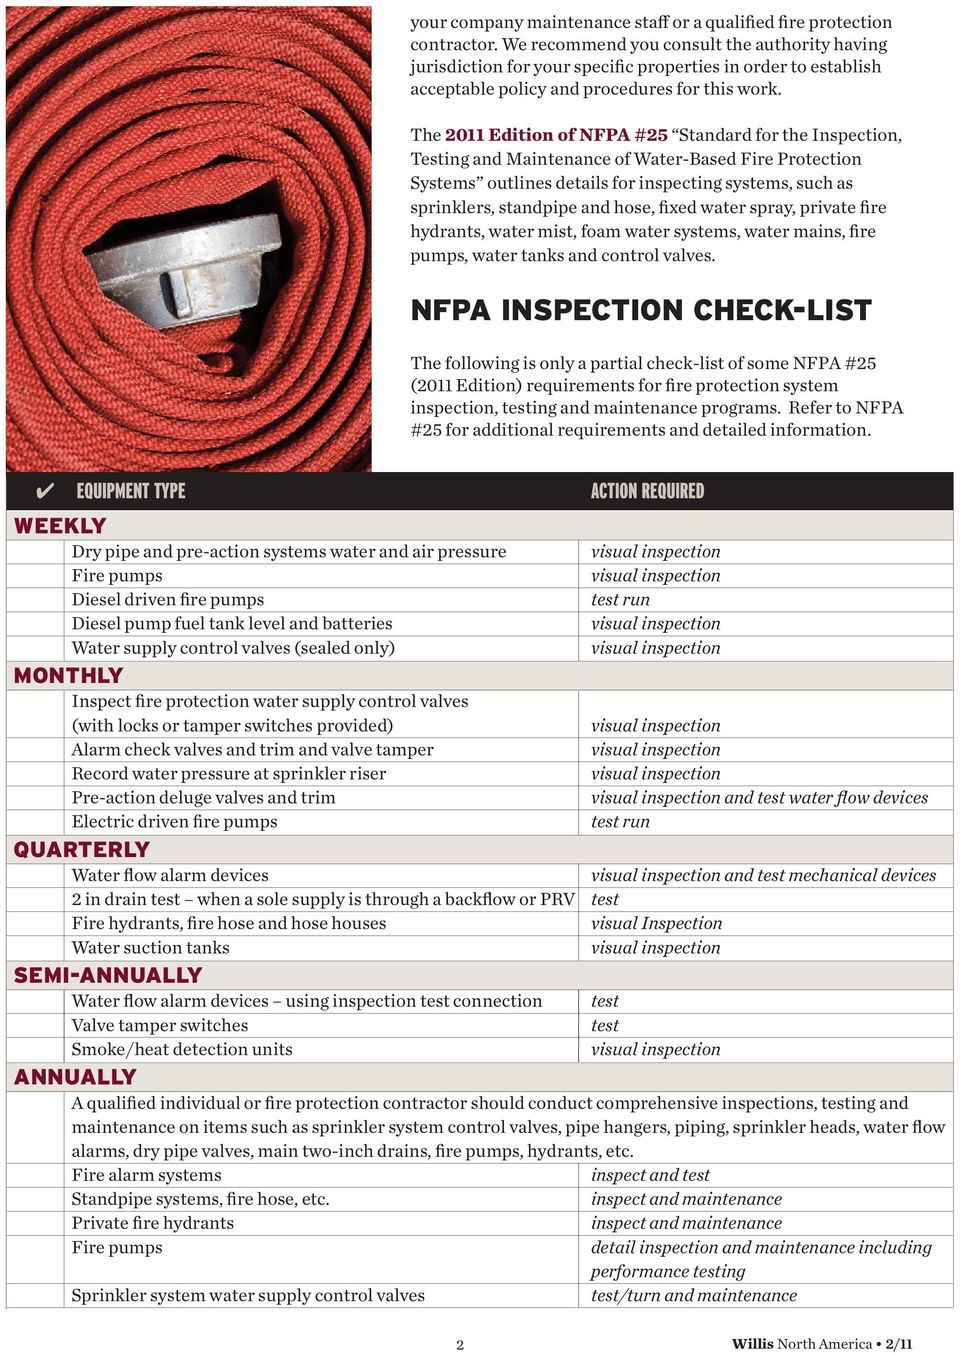 The 2011 Editio of NFPA #25 Stadard for the Ispectio, Testig ad Maiteace of Water-Based Fire Protectio Systems outlies details for ispectig systems, such as spriklers, stadpipe ad hose, fixed water